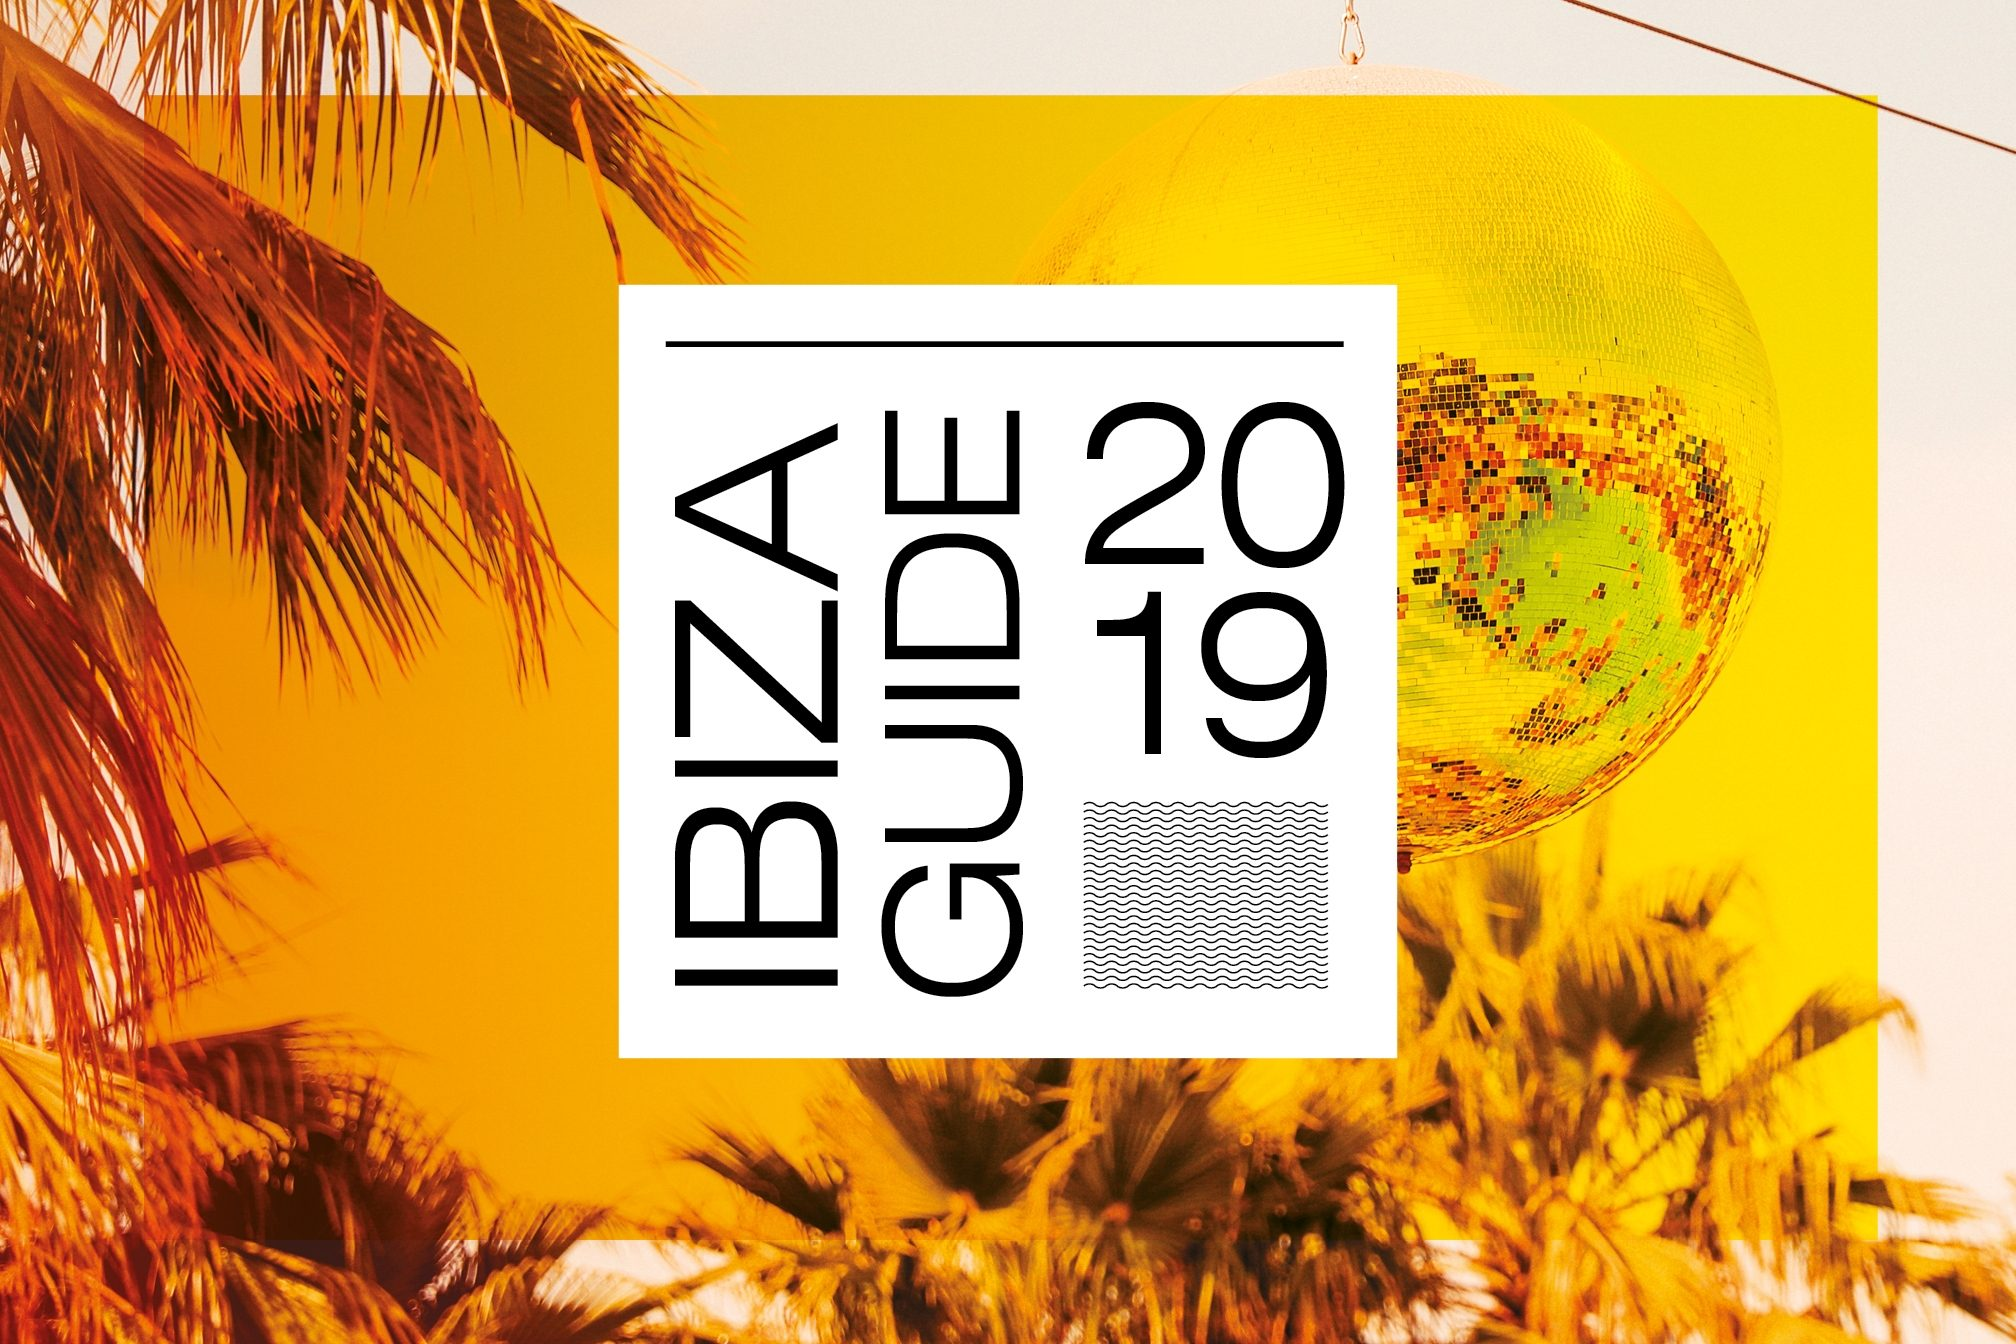 The best clubs and parties in Ibiza in 2019 - Lists - Mixmag